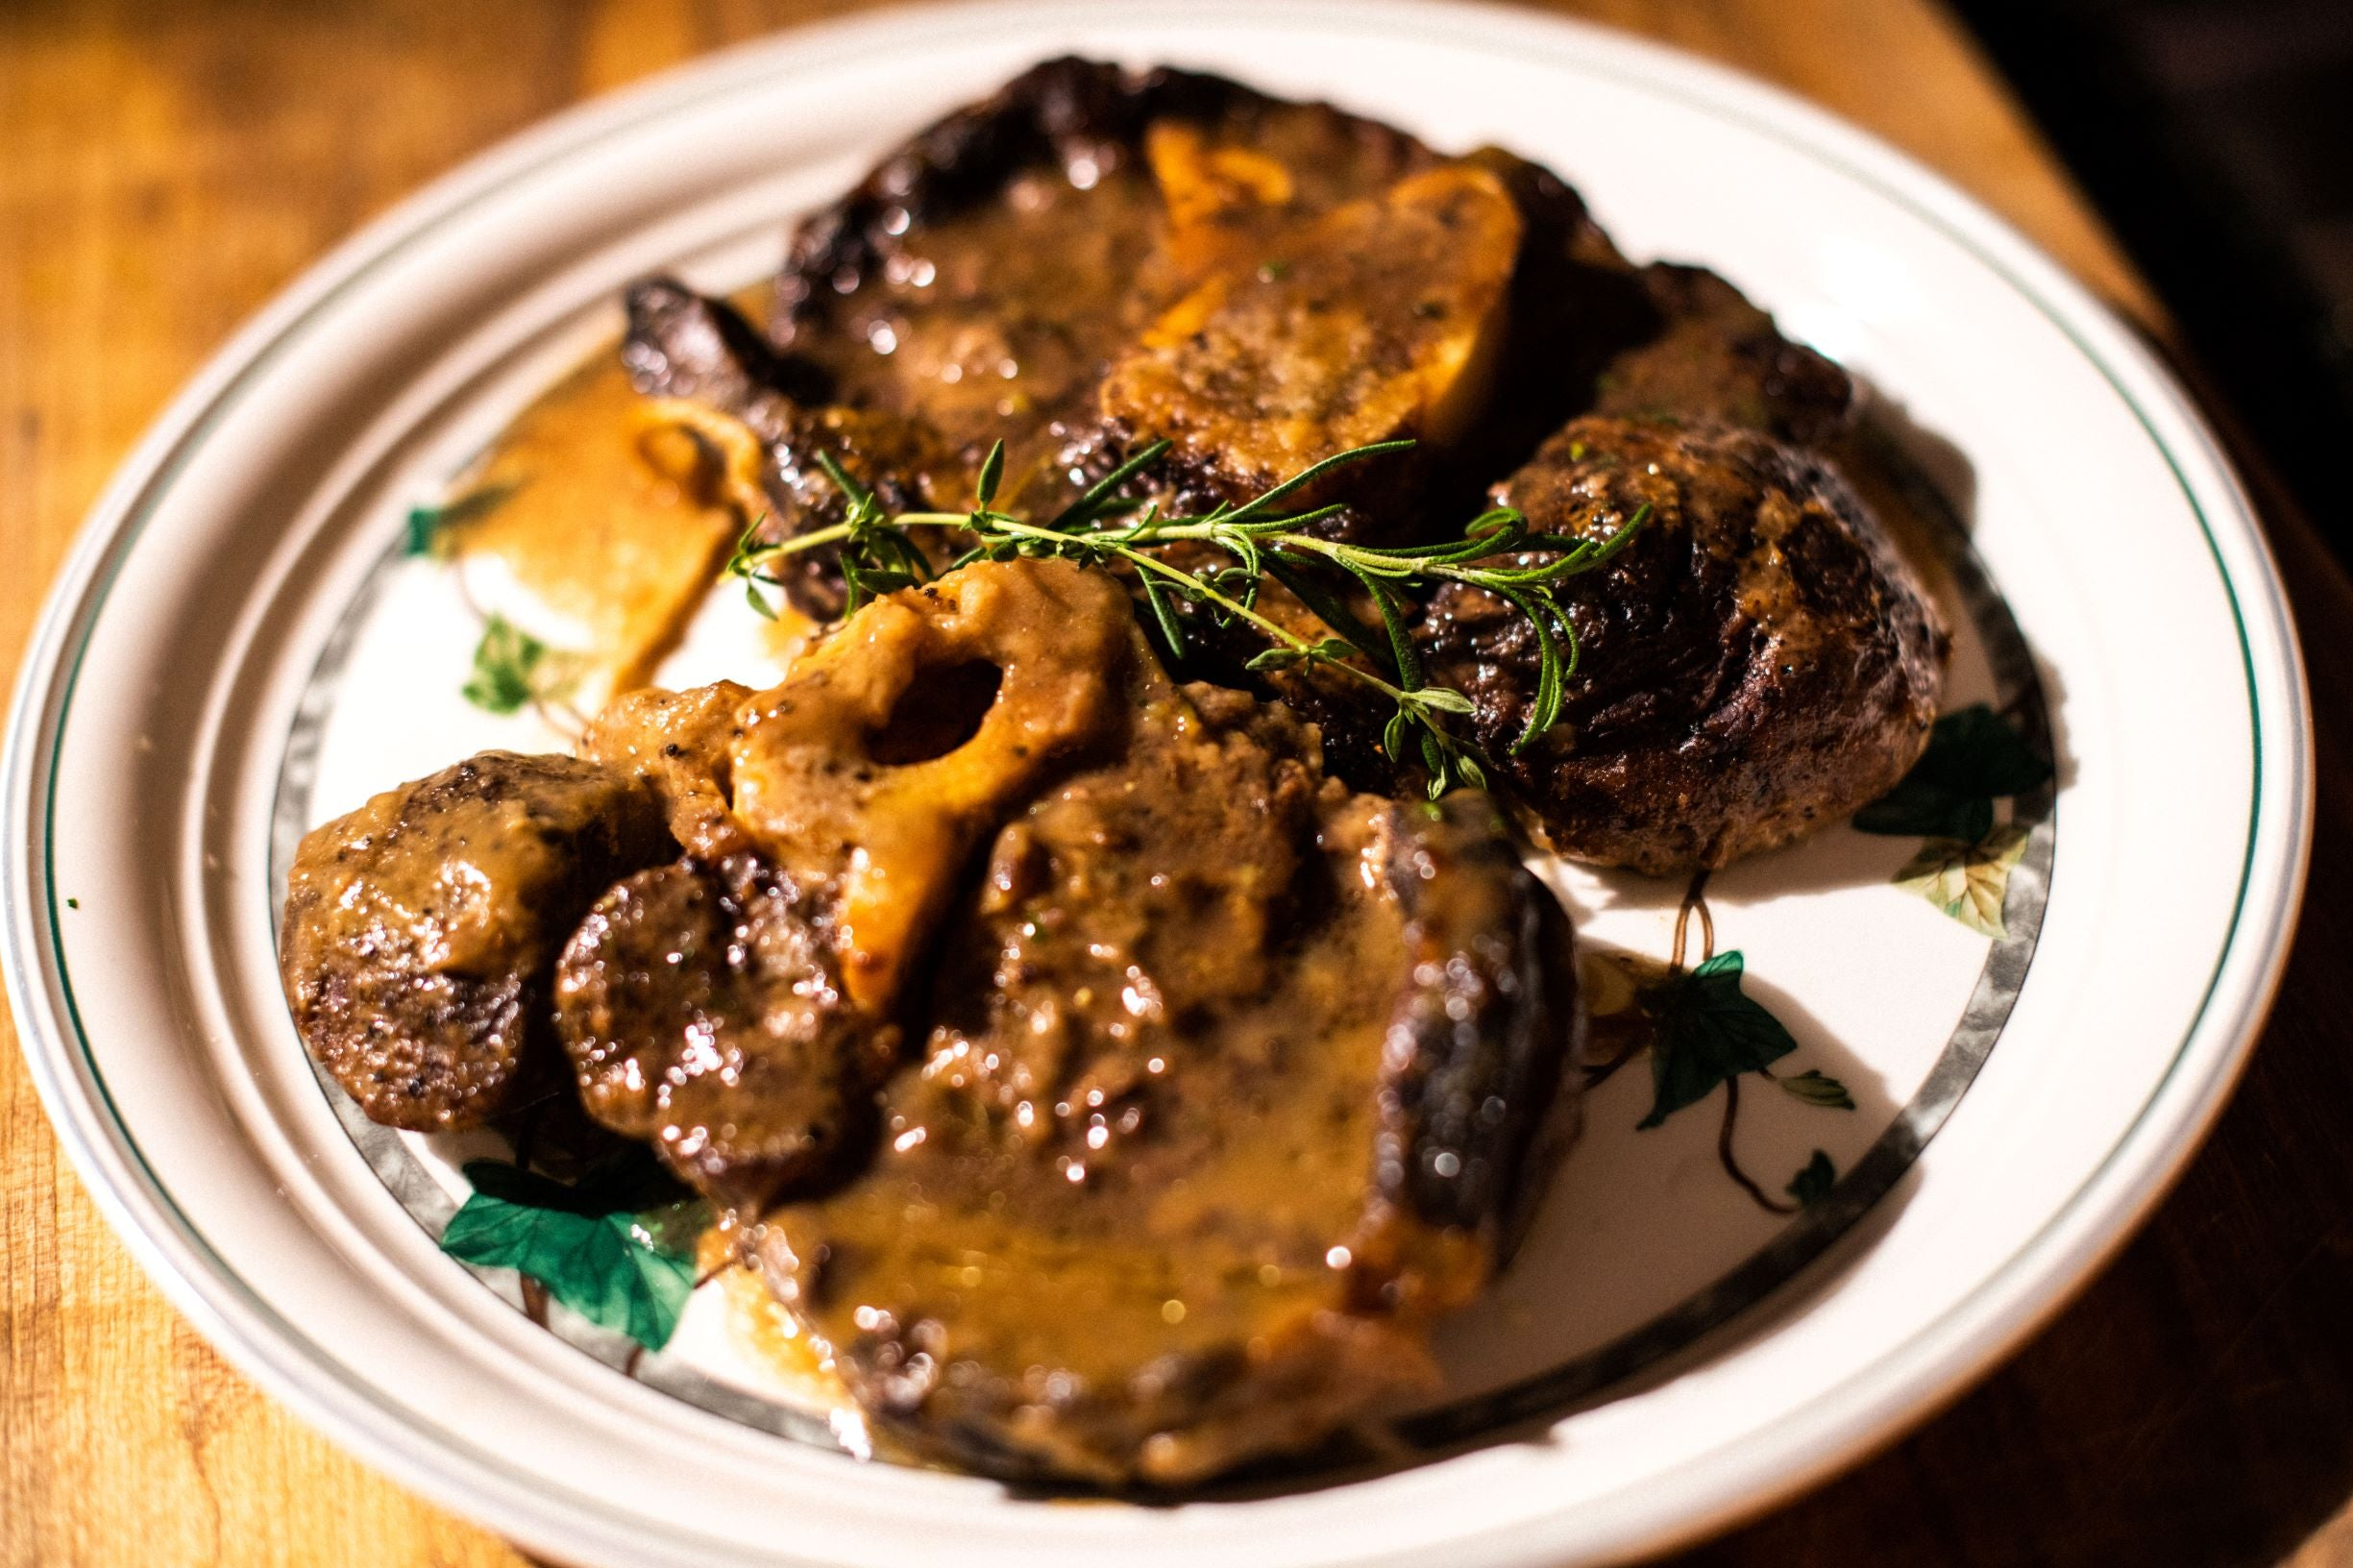 Dry Aged Beef Shank/Osso Bucco